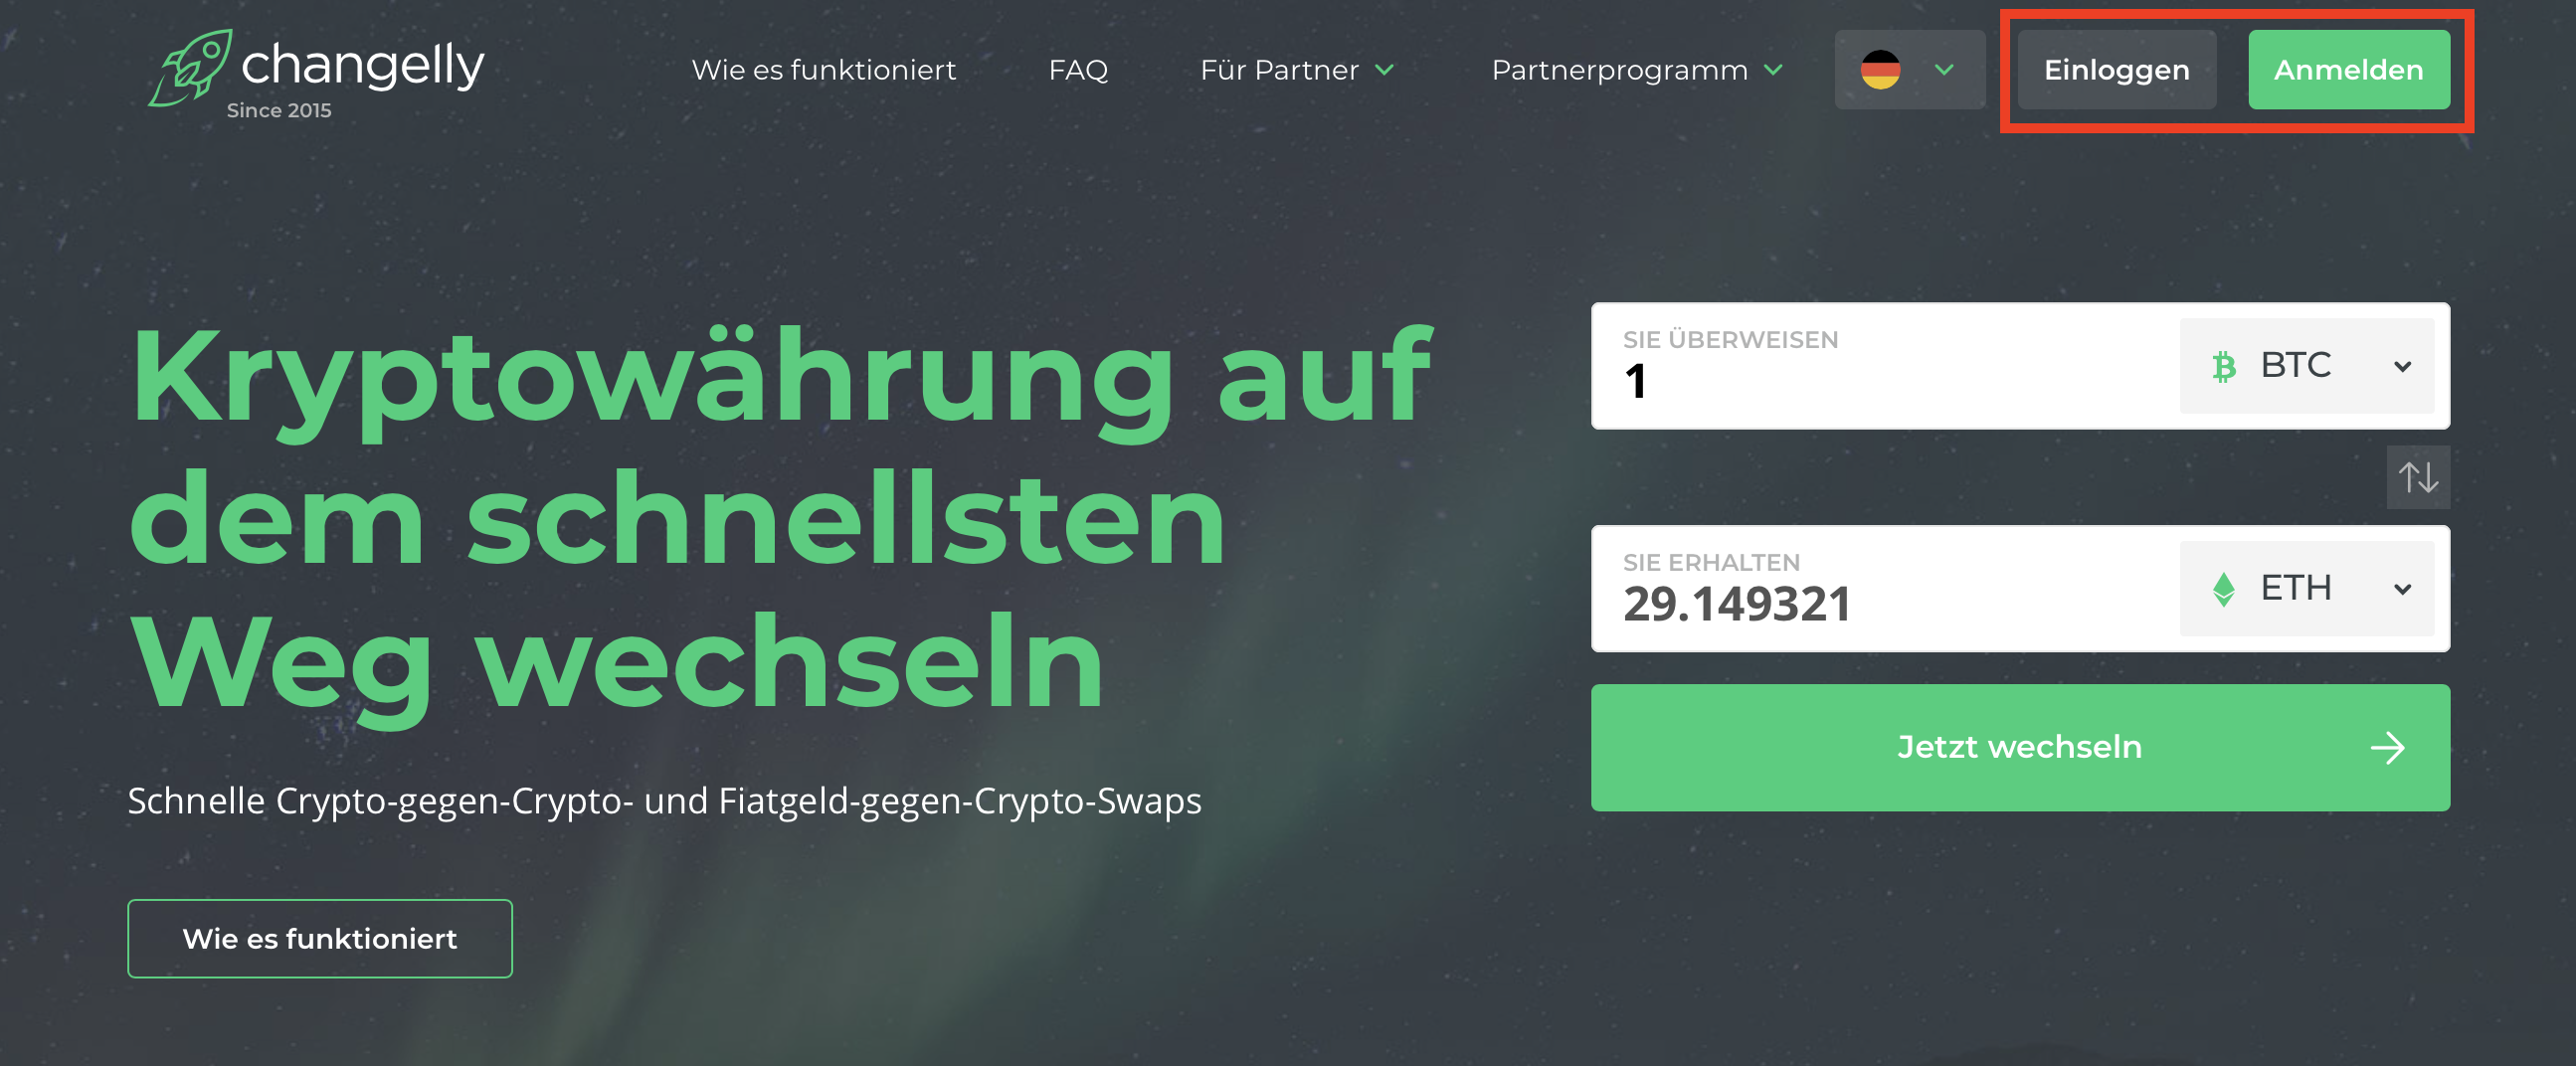 Changelly Login-Registrierung